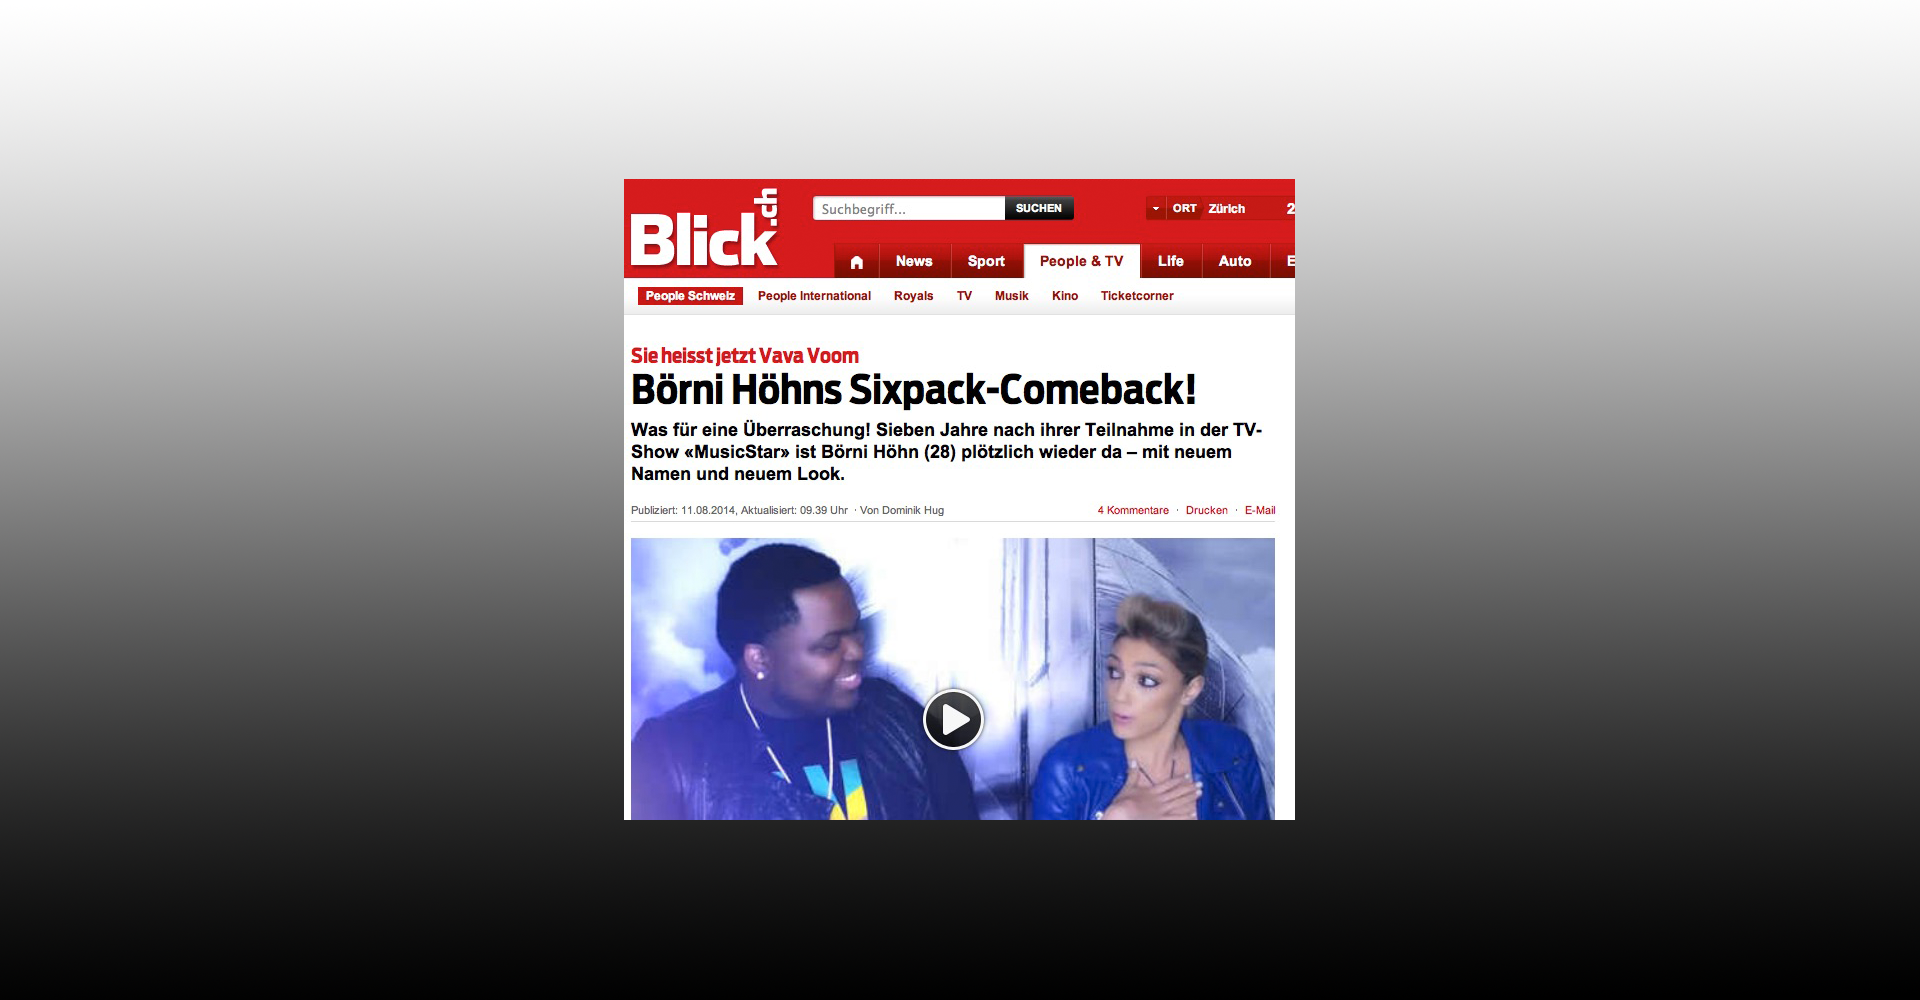 Blick Largest Selling Newspaper Börni